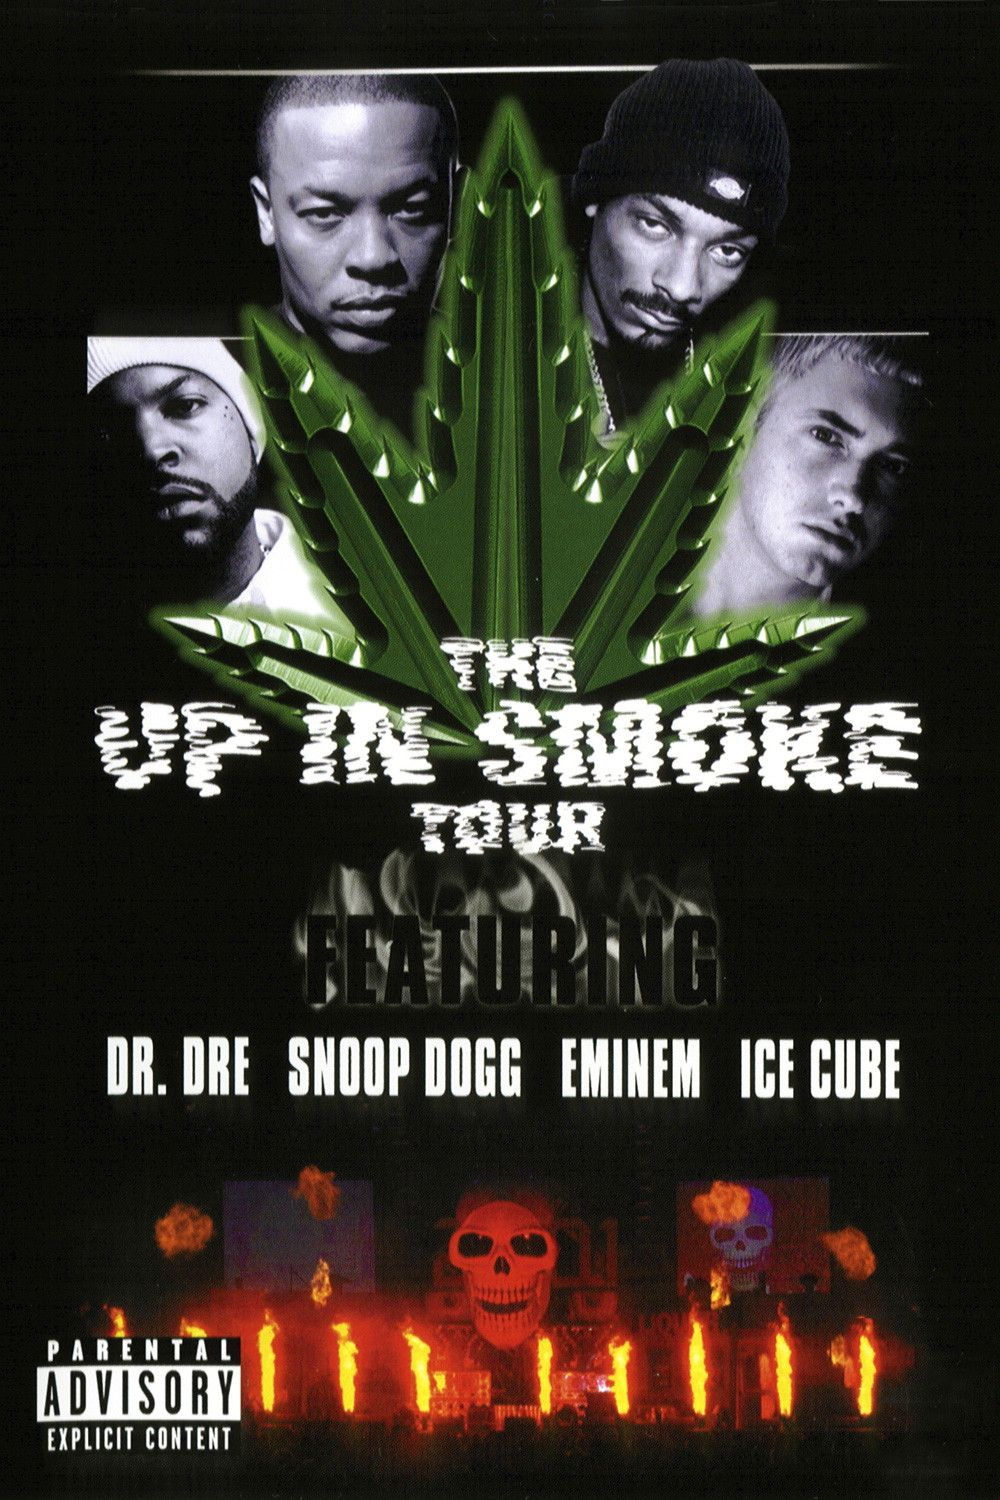 Ice Cube Cover Photo Beautiful the up in smoke tour - concert (2000) - senscritique